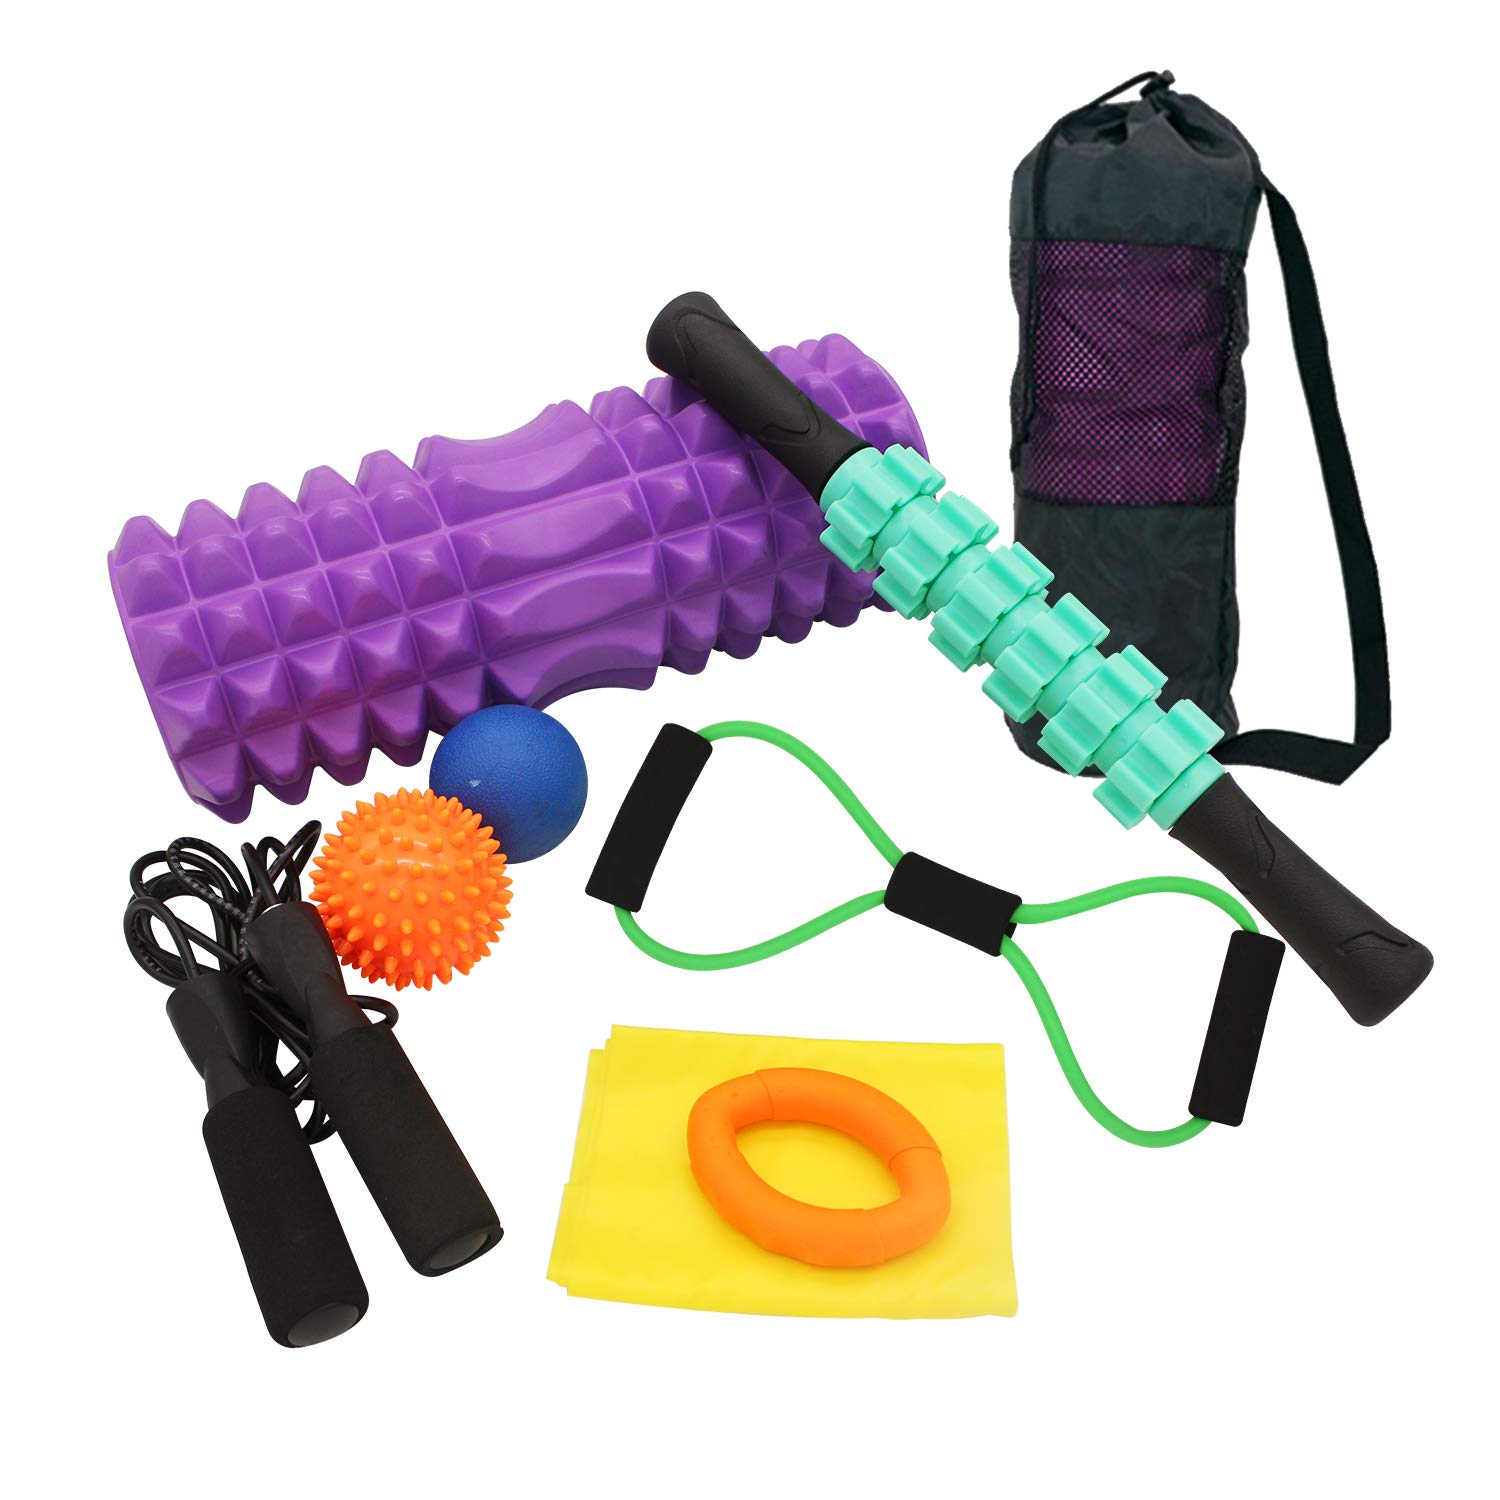 TerriTrophy 9 in 1 Foam Roller Set Includes Foam Roller Cap Muscle Roller Stick Massage Ball Spike Ball Jumping Rope Resistant Band, Grip Strengthener All in One Carry Bag